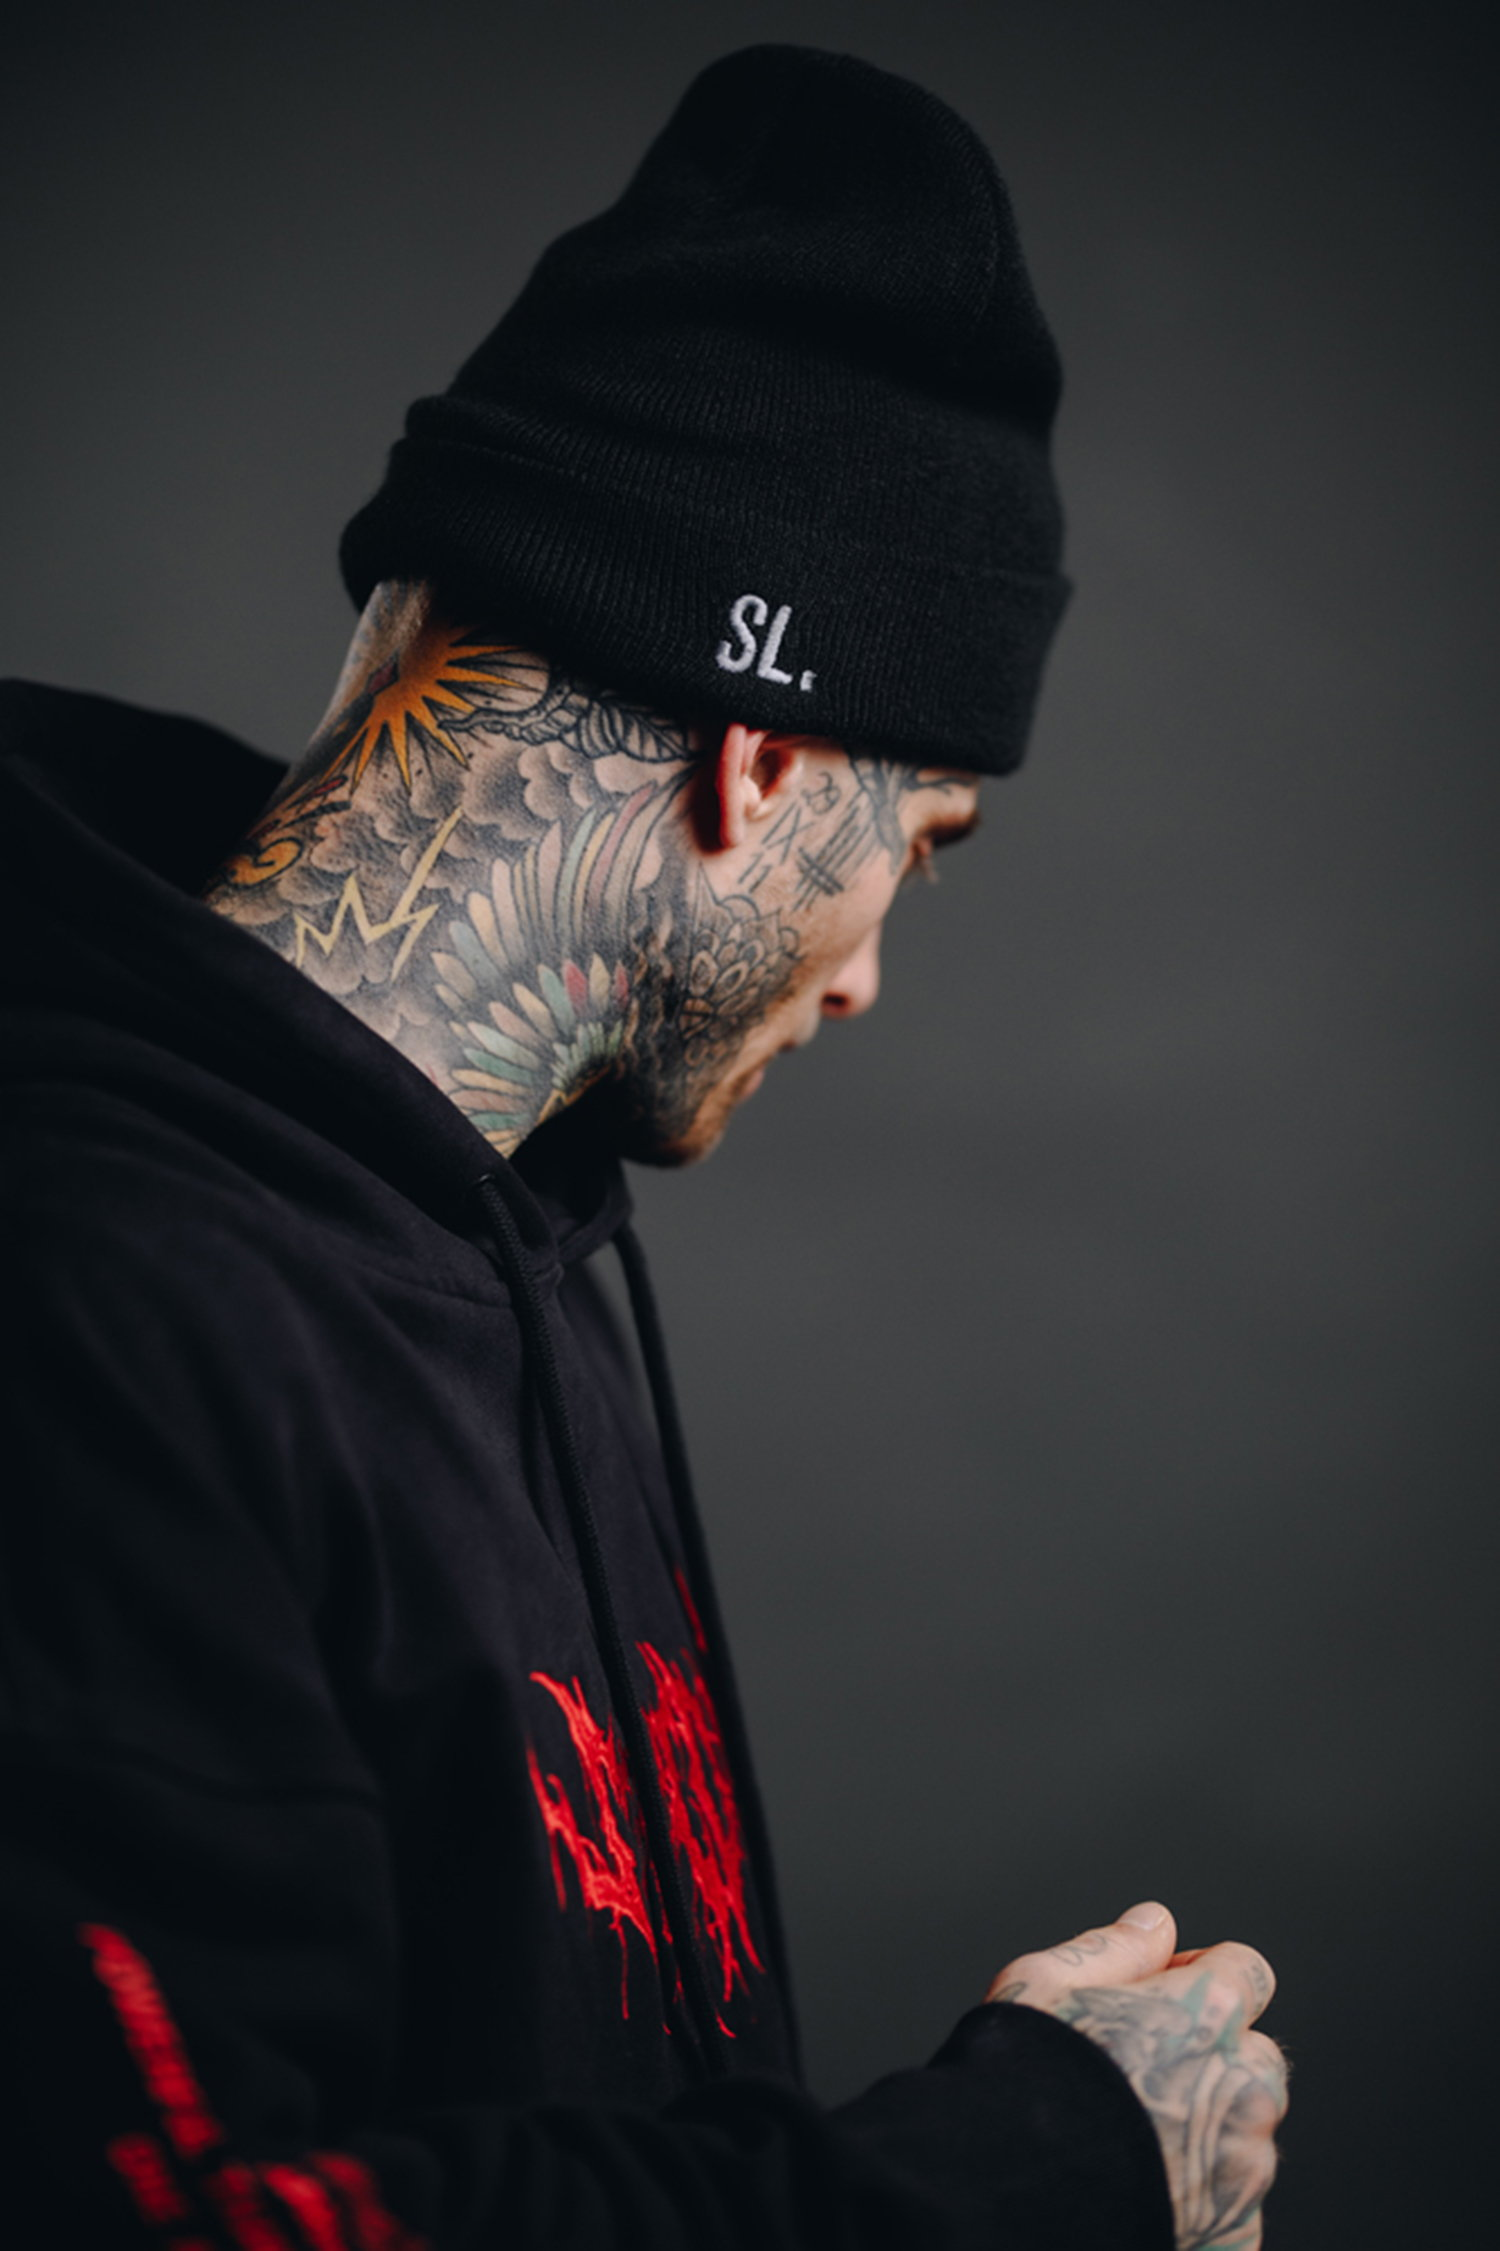 bloodshot black hoody sweater, tattoo inspired clothing, stay cold apparel, the superior line, SVPRR